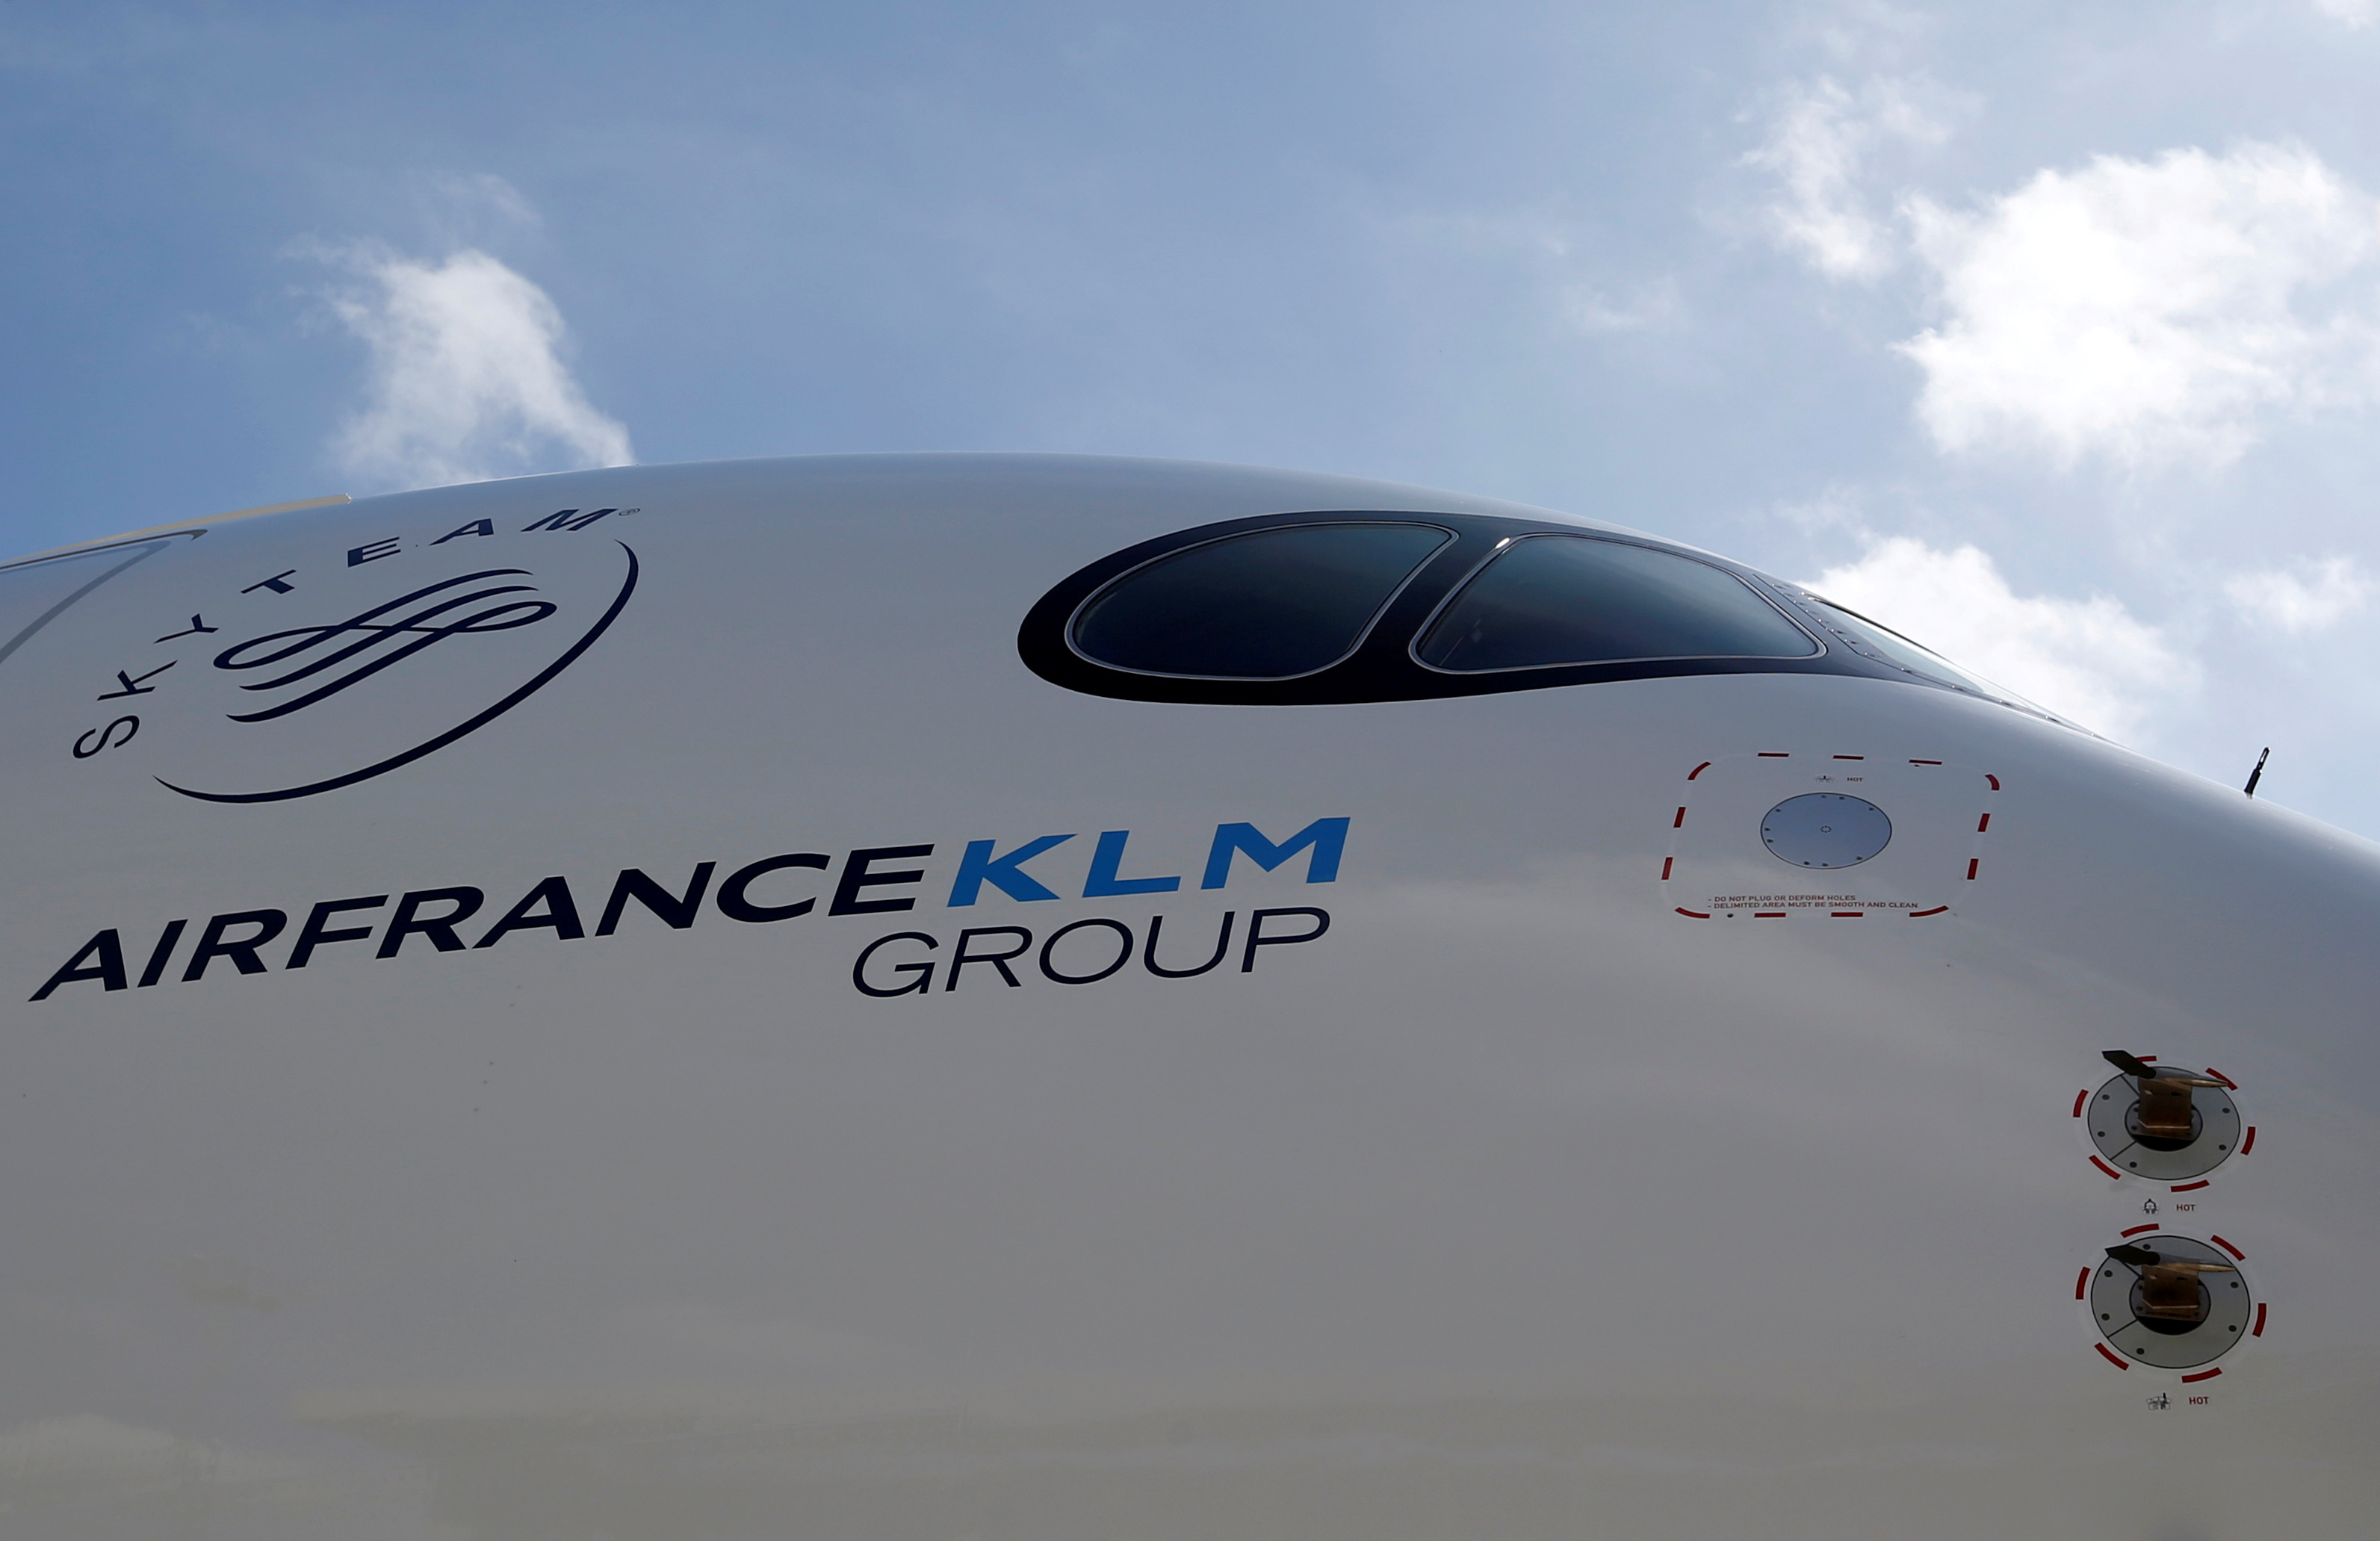 Logo of Air France KLM Group is pictured on the first Air France airliner's Airbus A350 during a ceremony at the aircraft builder's headquarters of Airbus in Colomiers near Toulouse, France, September 27, 2019. REUTERS/Regis Duvignau/File Photo